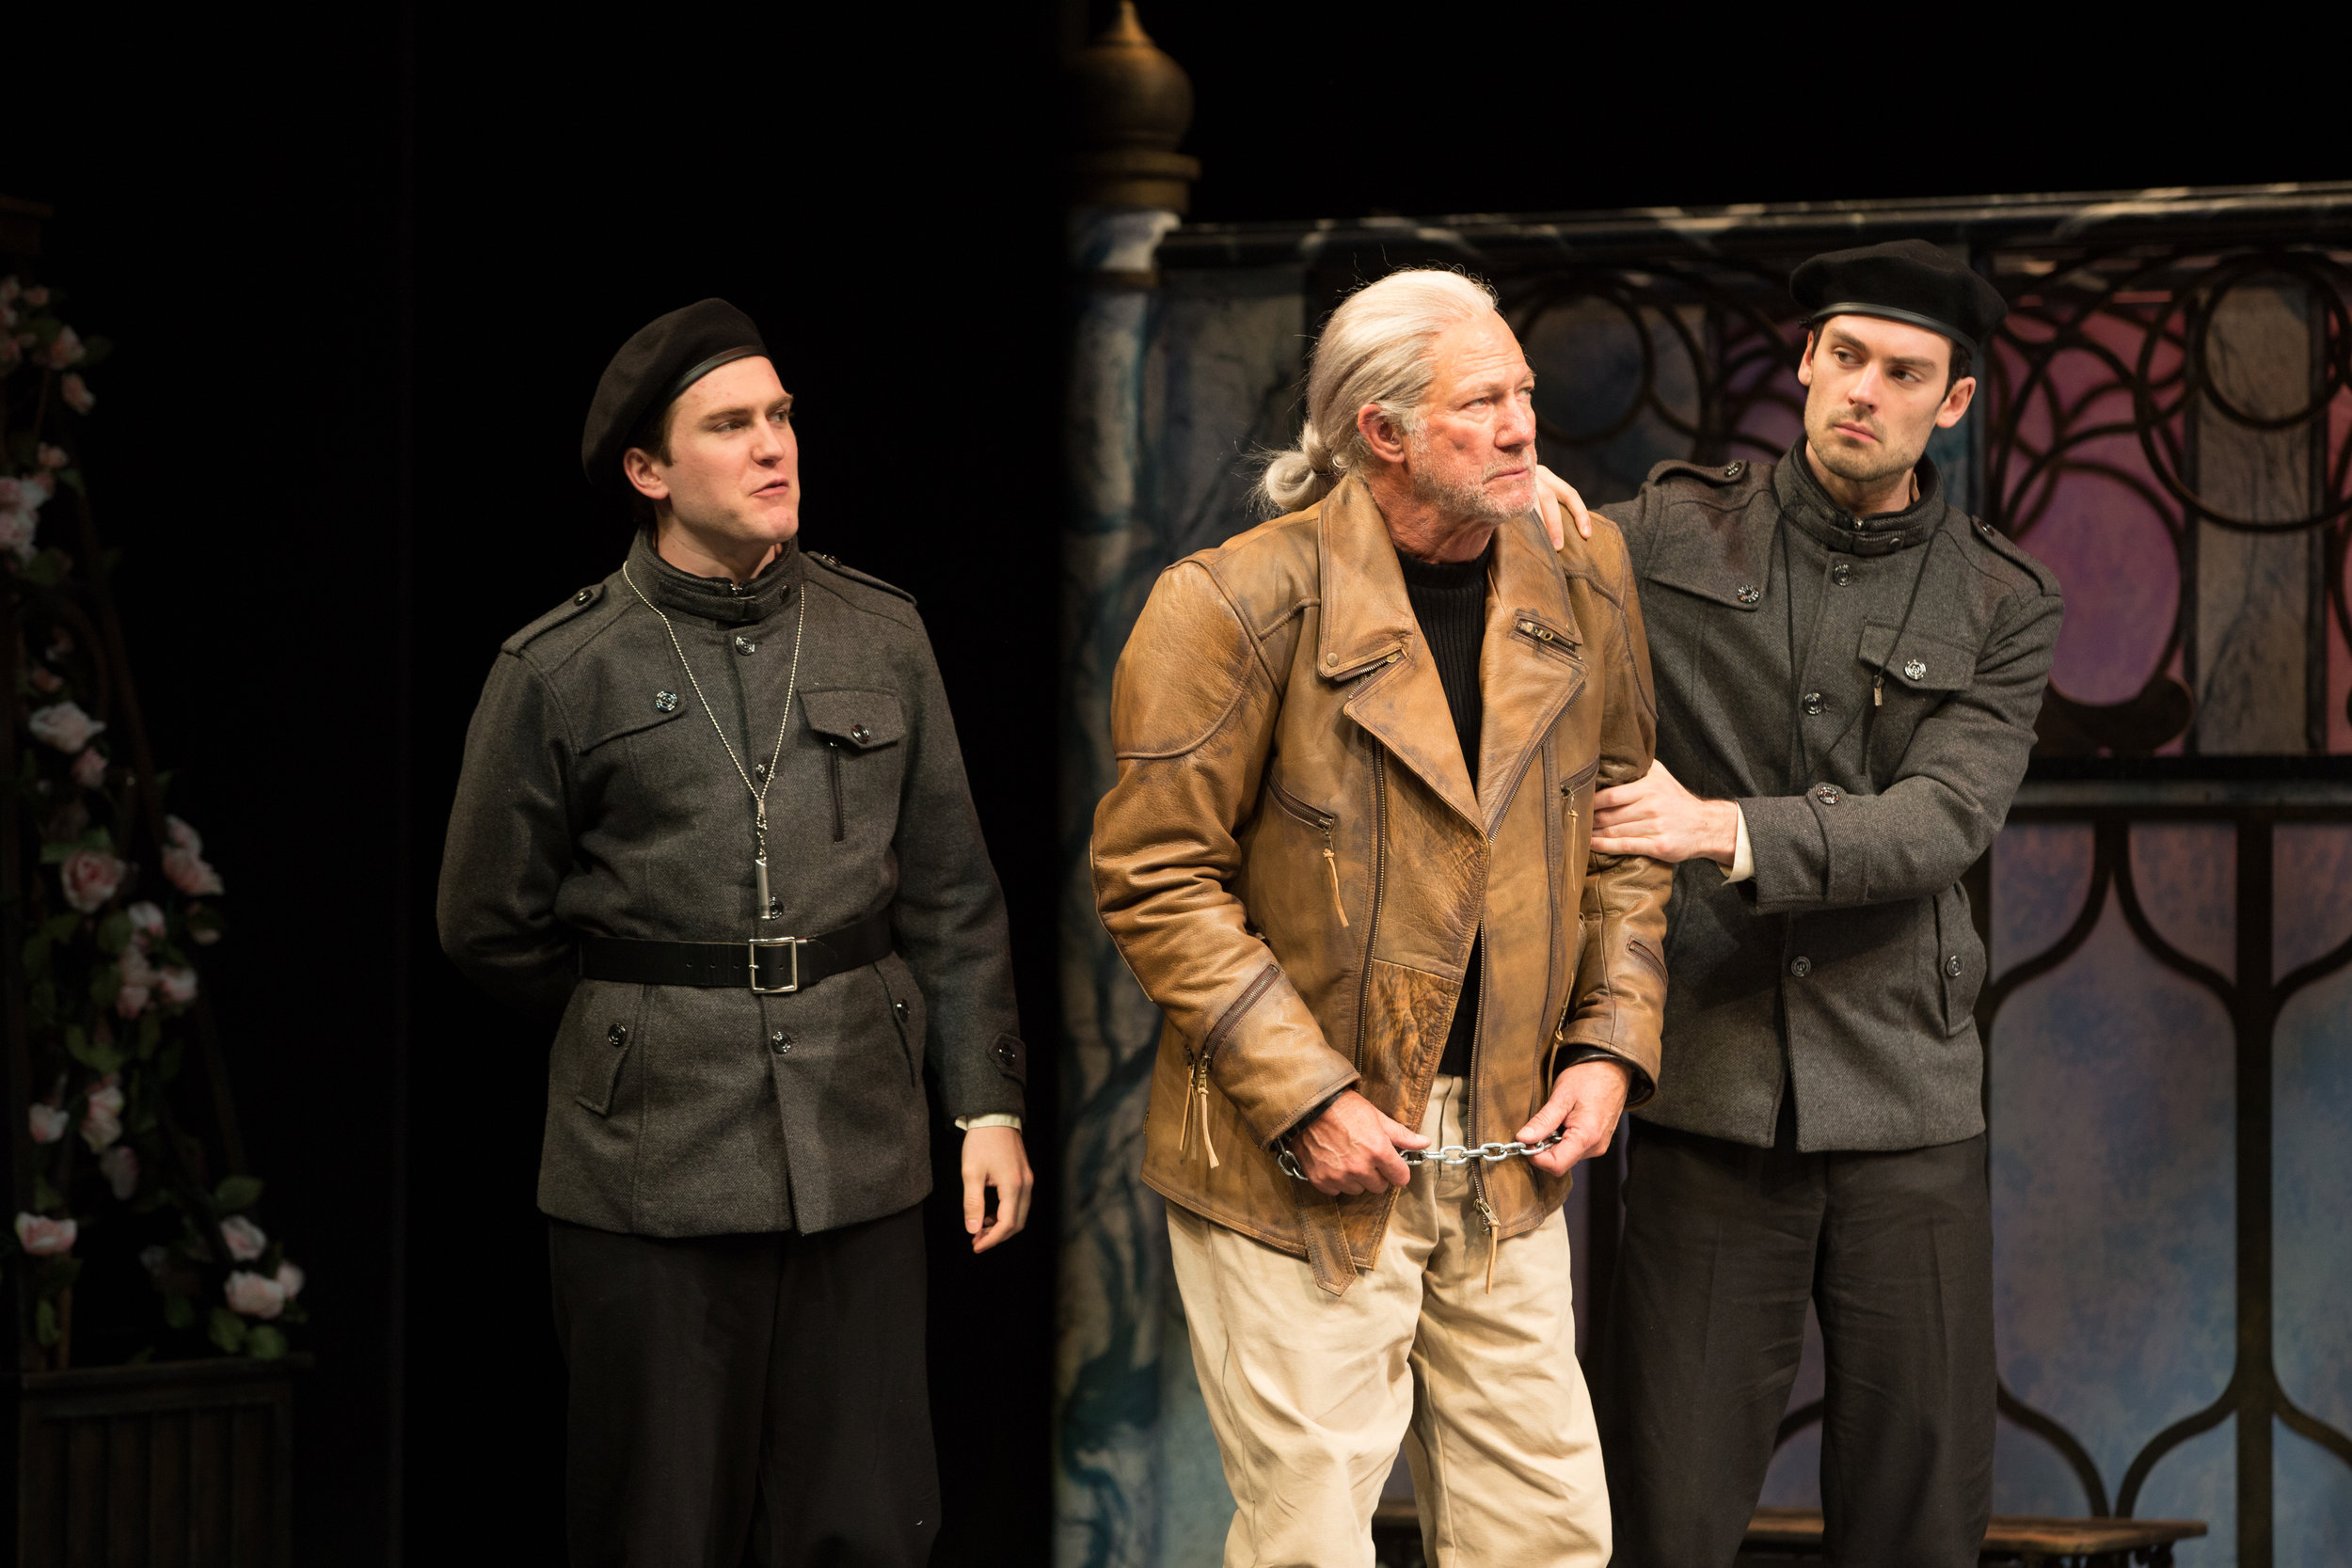 Brian Ott, Rodney Clarke and Woodrow Proctor in order. Antonio flanked by the two officers in ASF's 2018 production of Twelfth Night directed by Greta Lambert.